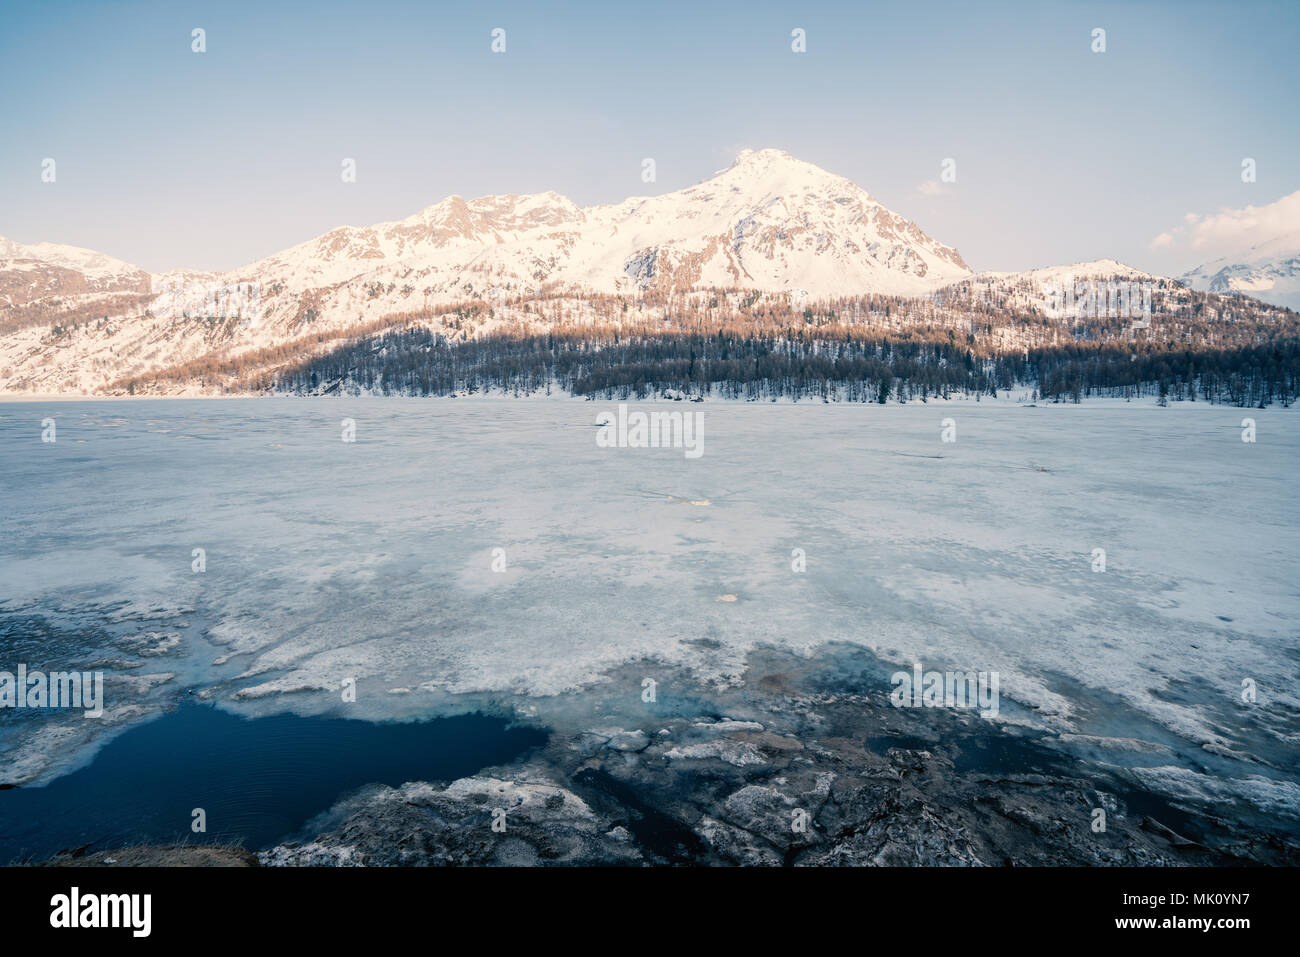 Beautiful view of frozen lake and snowcapped mountains in Graubunden Canton in Switzerland, Europe. Travel destinations no people concept Stock Photo